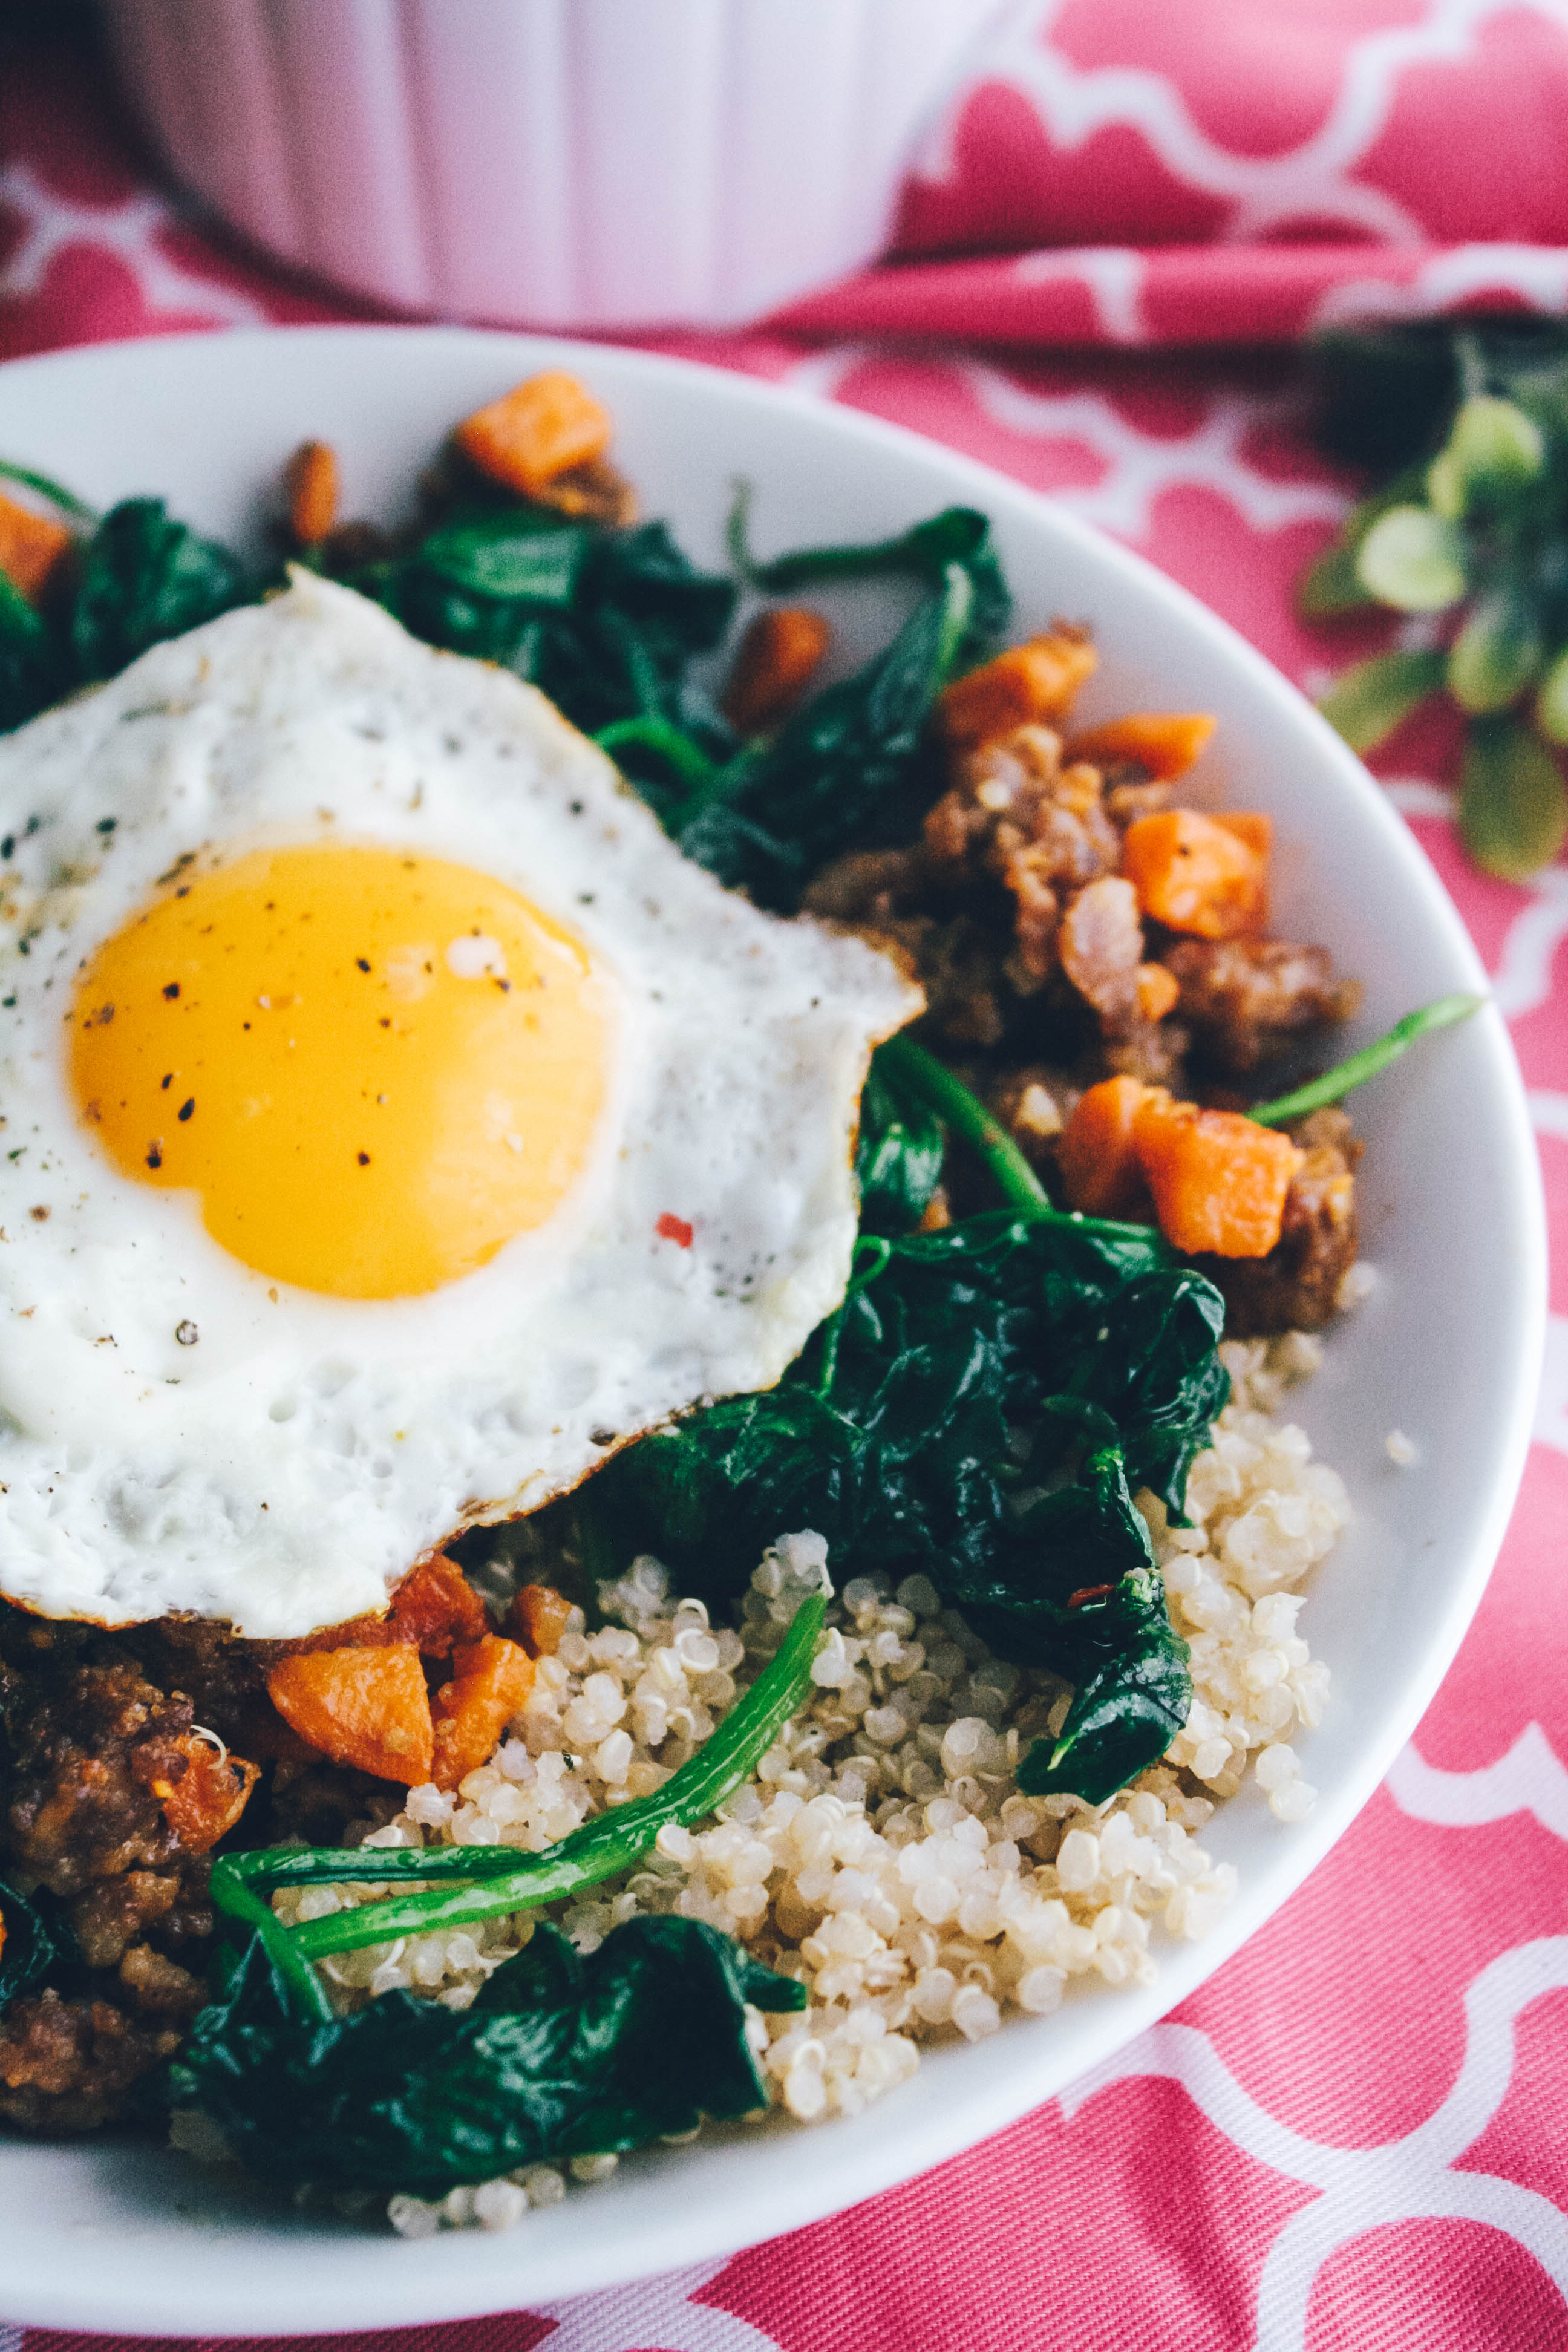 Sausage, Sweet Potato & Spinach Quinoa Bowls with Egg make a wonderful and filling meal. Sausage, Sweet Potato & Spinach Quinoa Bowls with Egg are filling and flavorful!